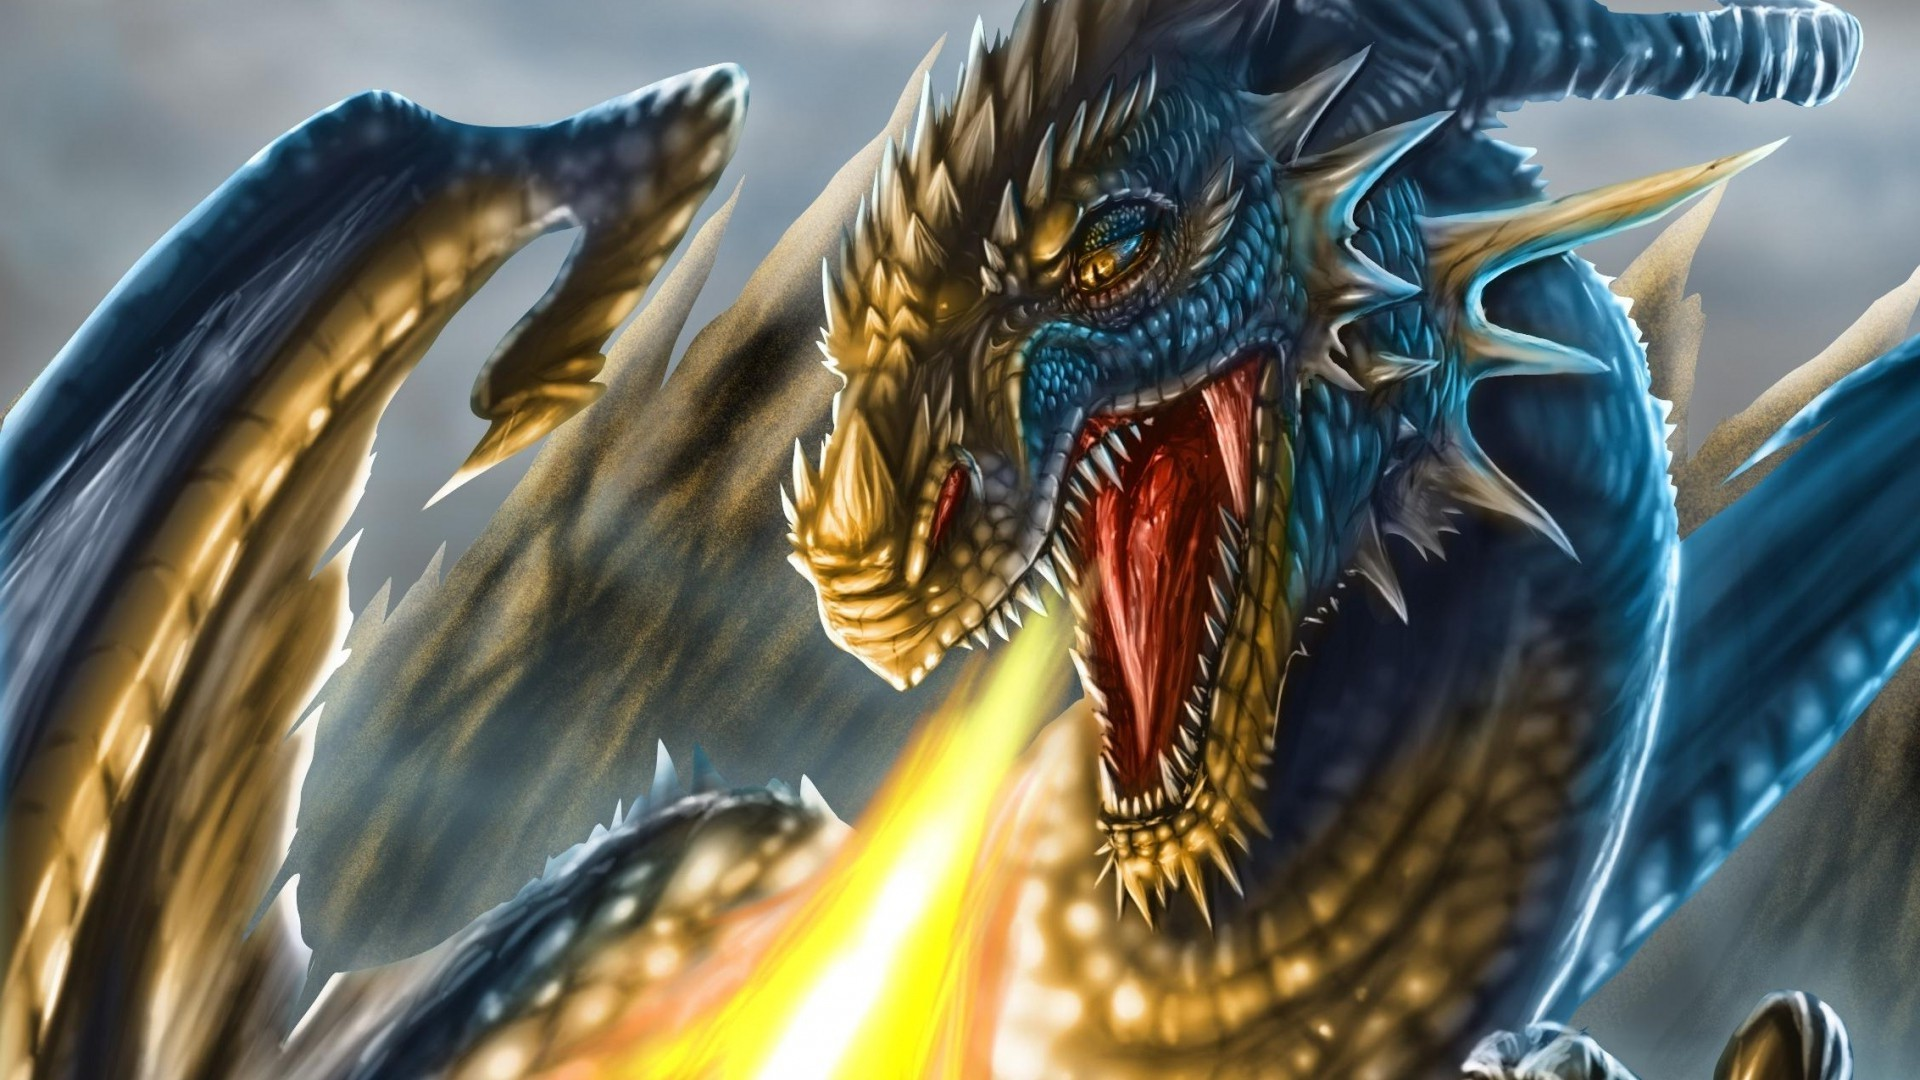 1920x1080 fantasy Art, Dragon, Face, Head, Fire, Teeth, Scales, Wings, Dragon Wings  Wallpapers HD / Desktop and Mobile Backgrounds